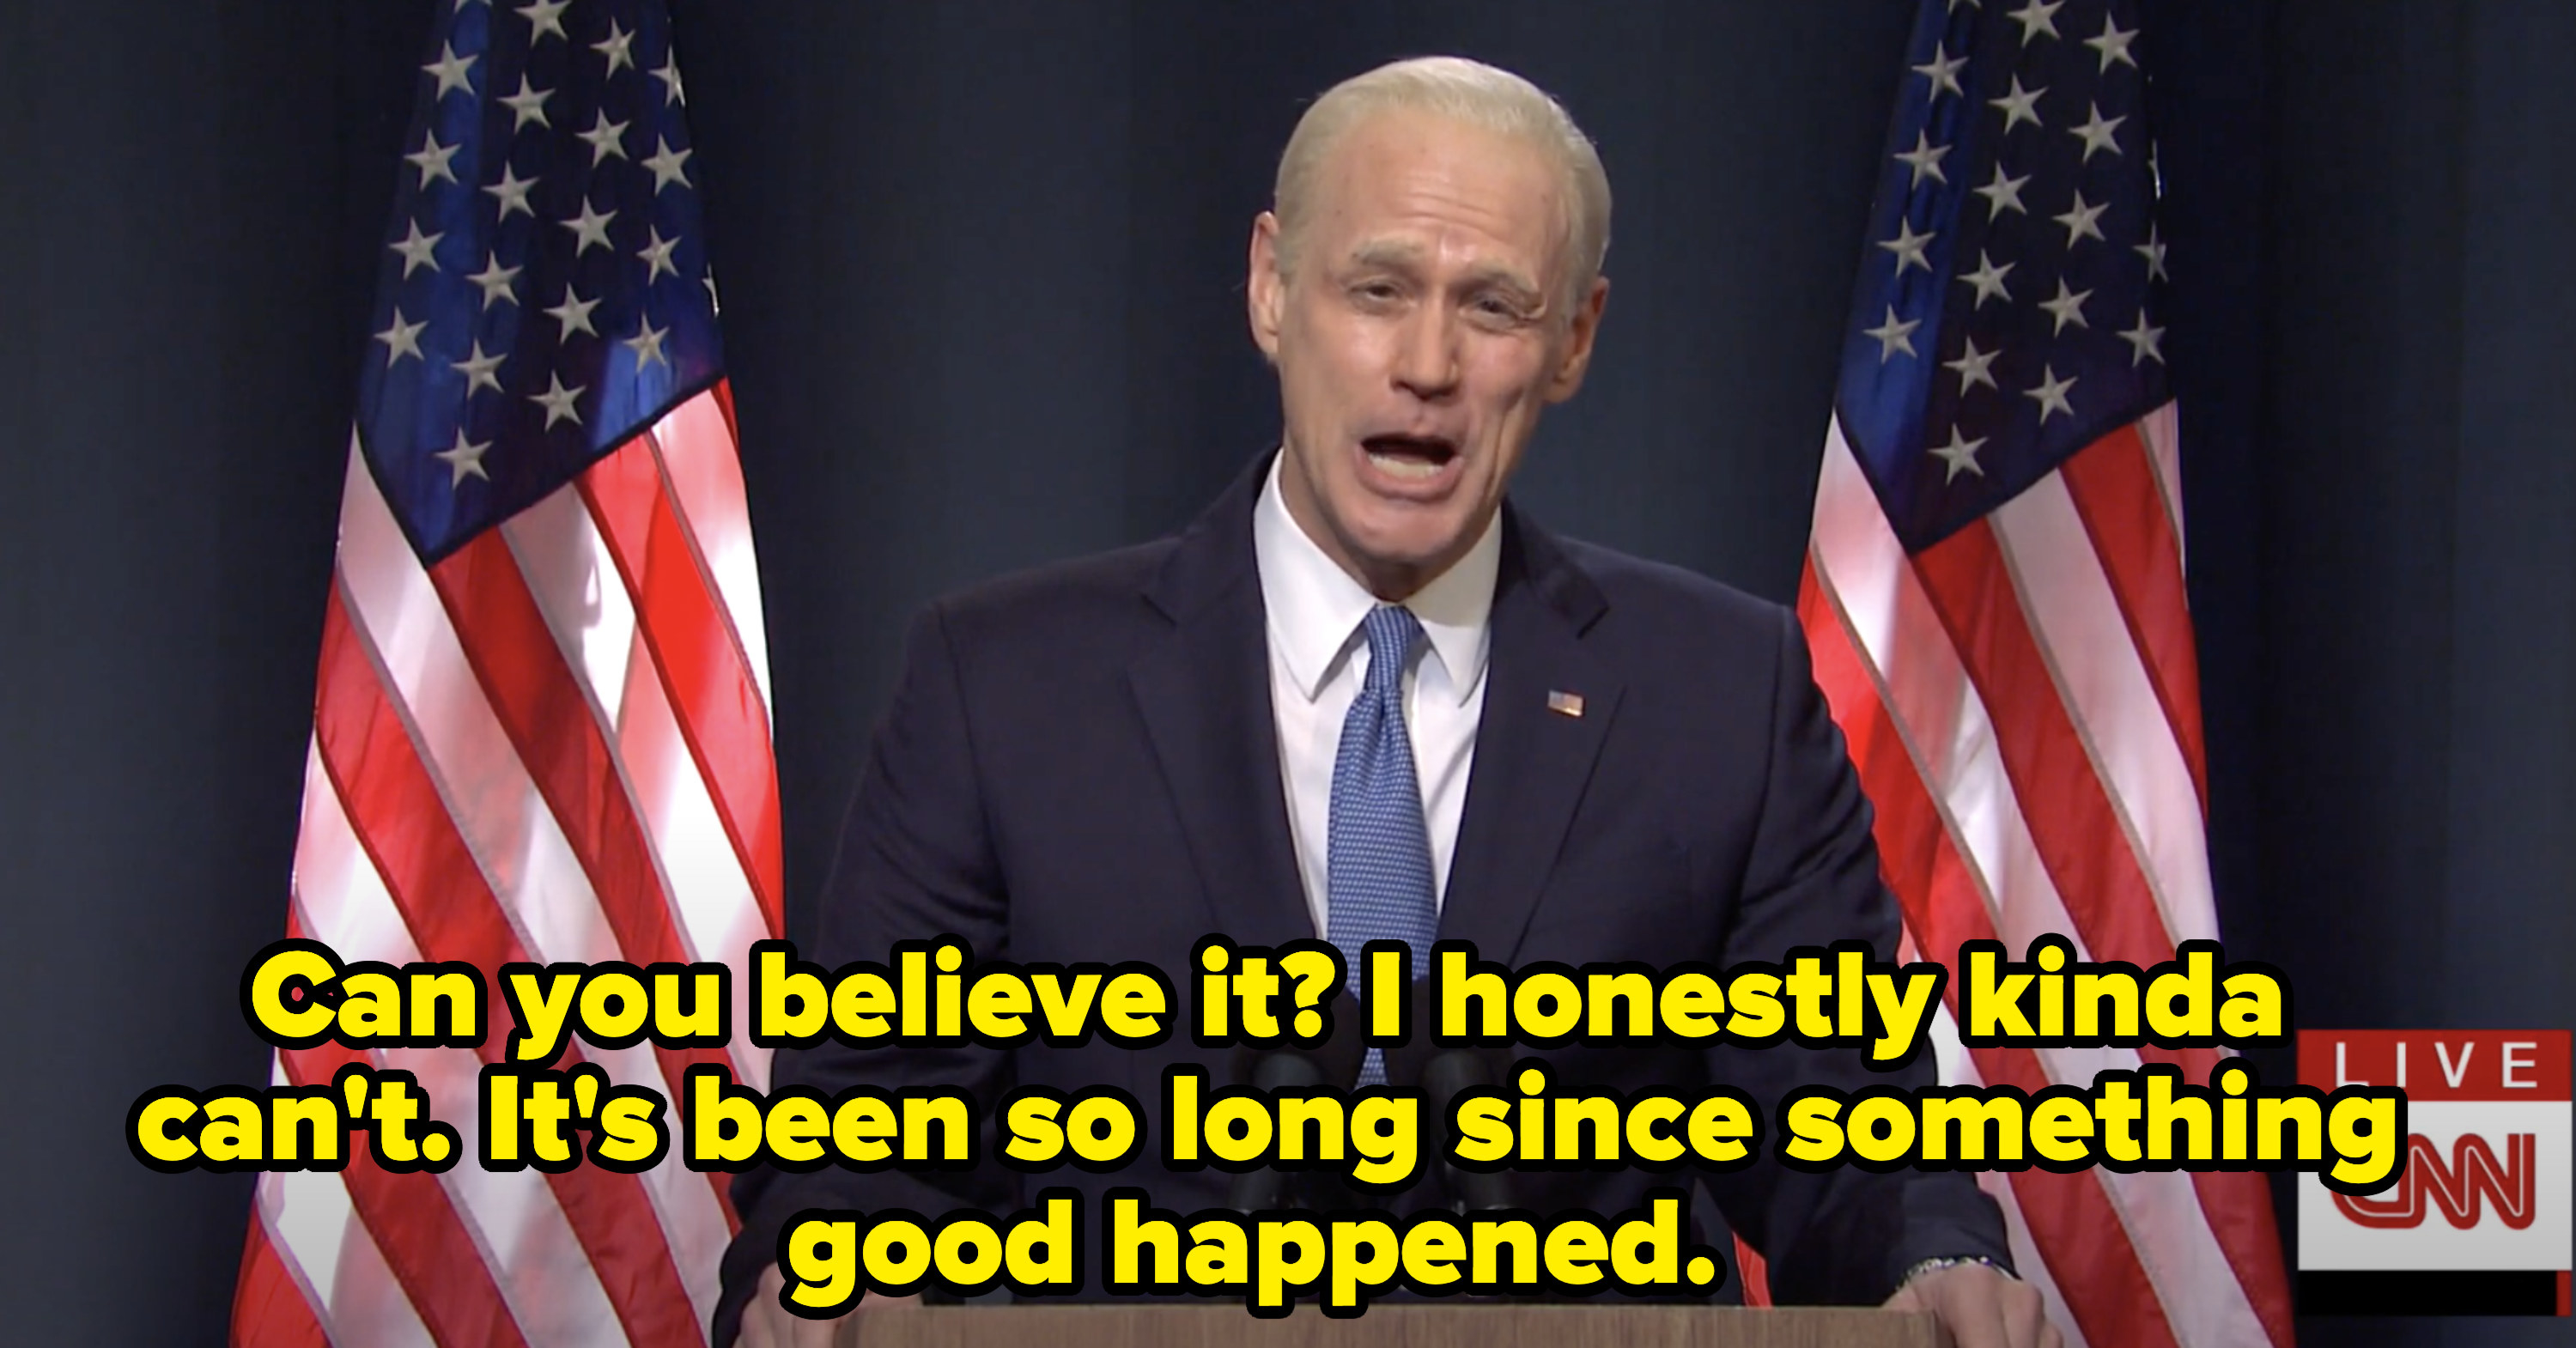 Biden saying he can't believe it and that it's been so long since something good happened